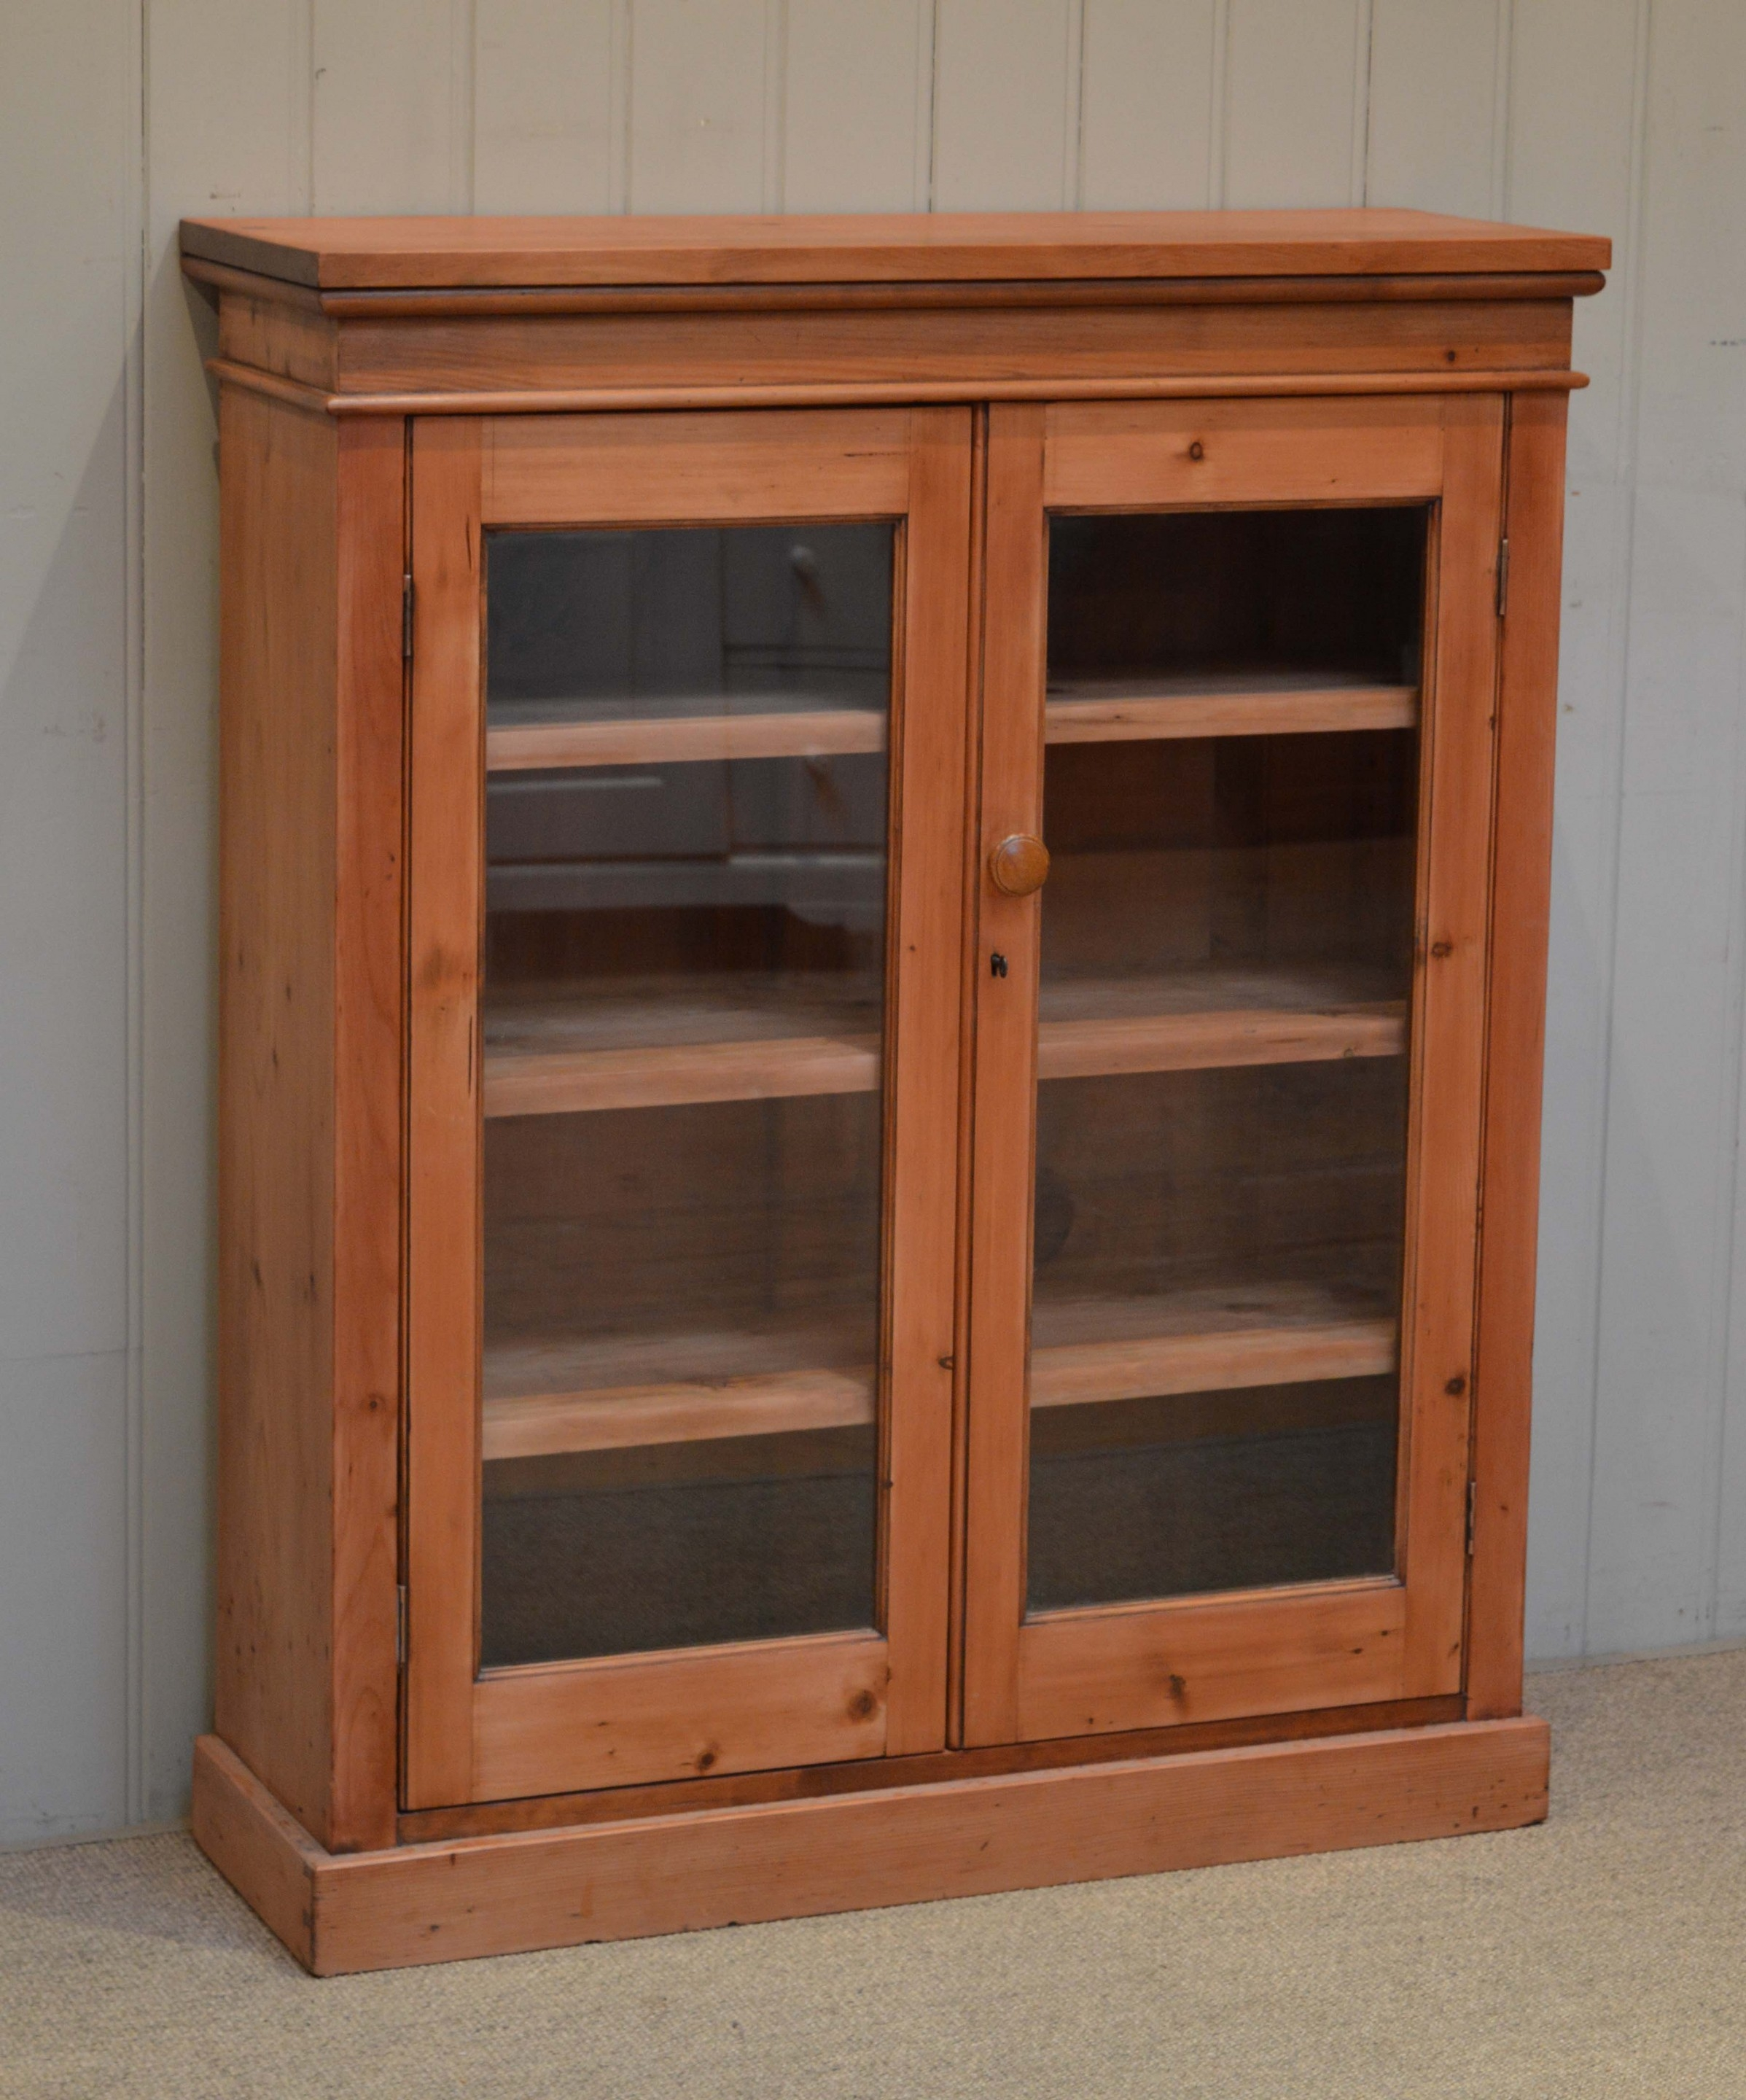 Pine Two Door Glazed Bookcase C 1910 English From Worboys Regarding Glazed Bookcases (#11 of 15)